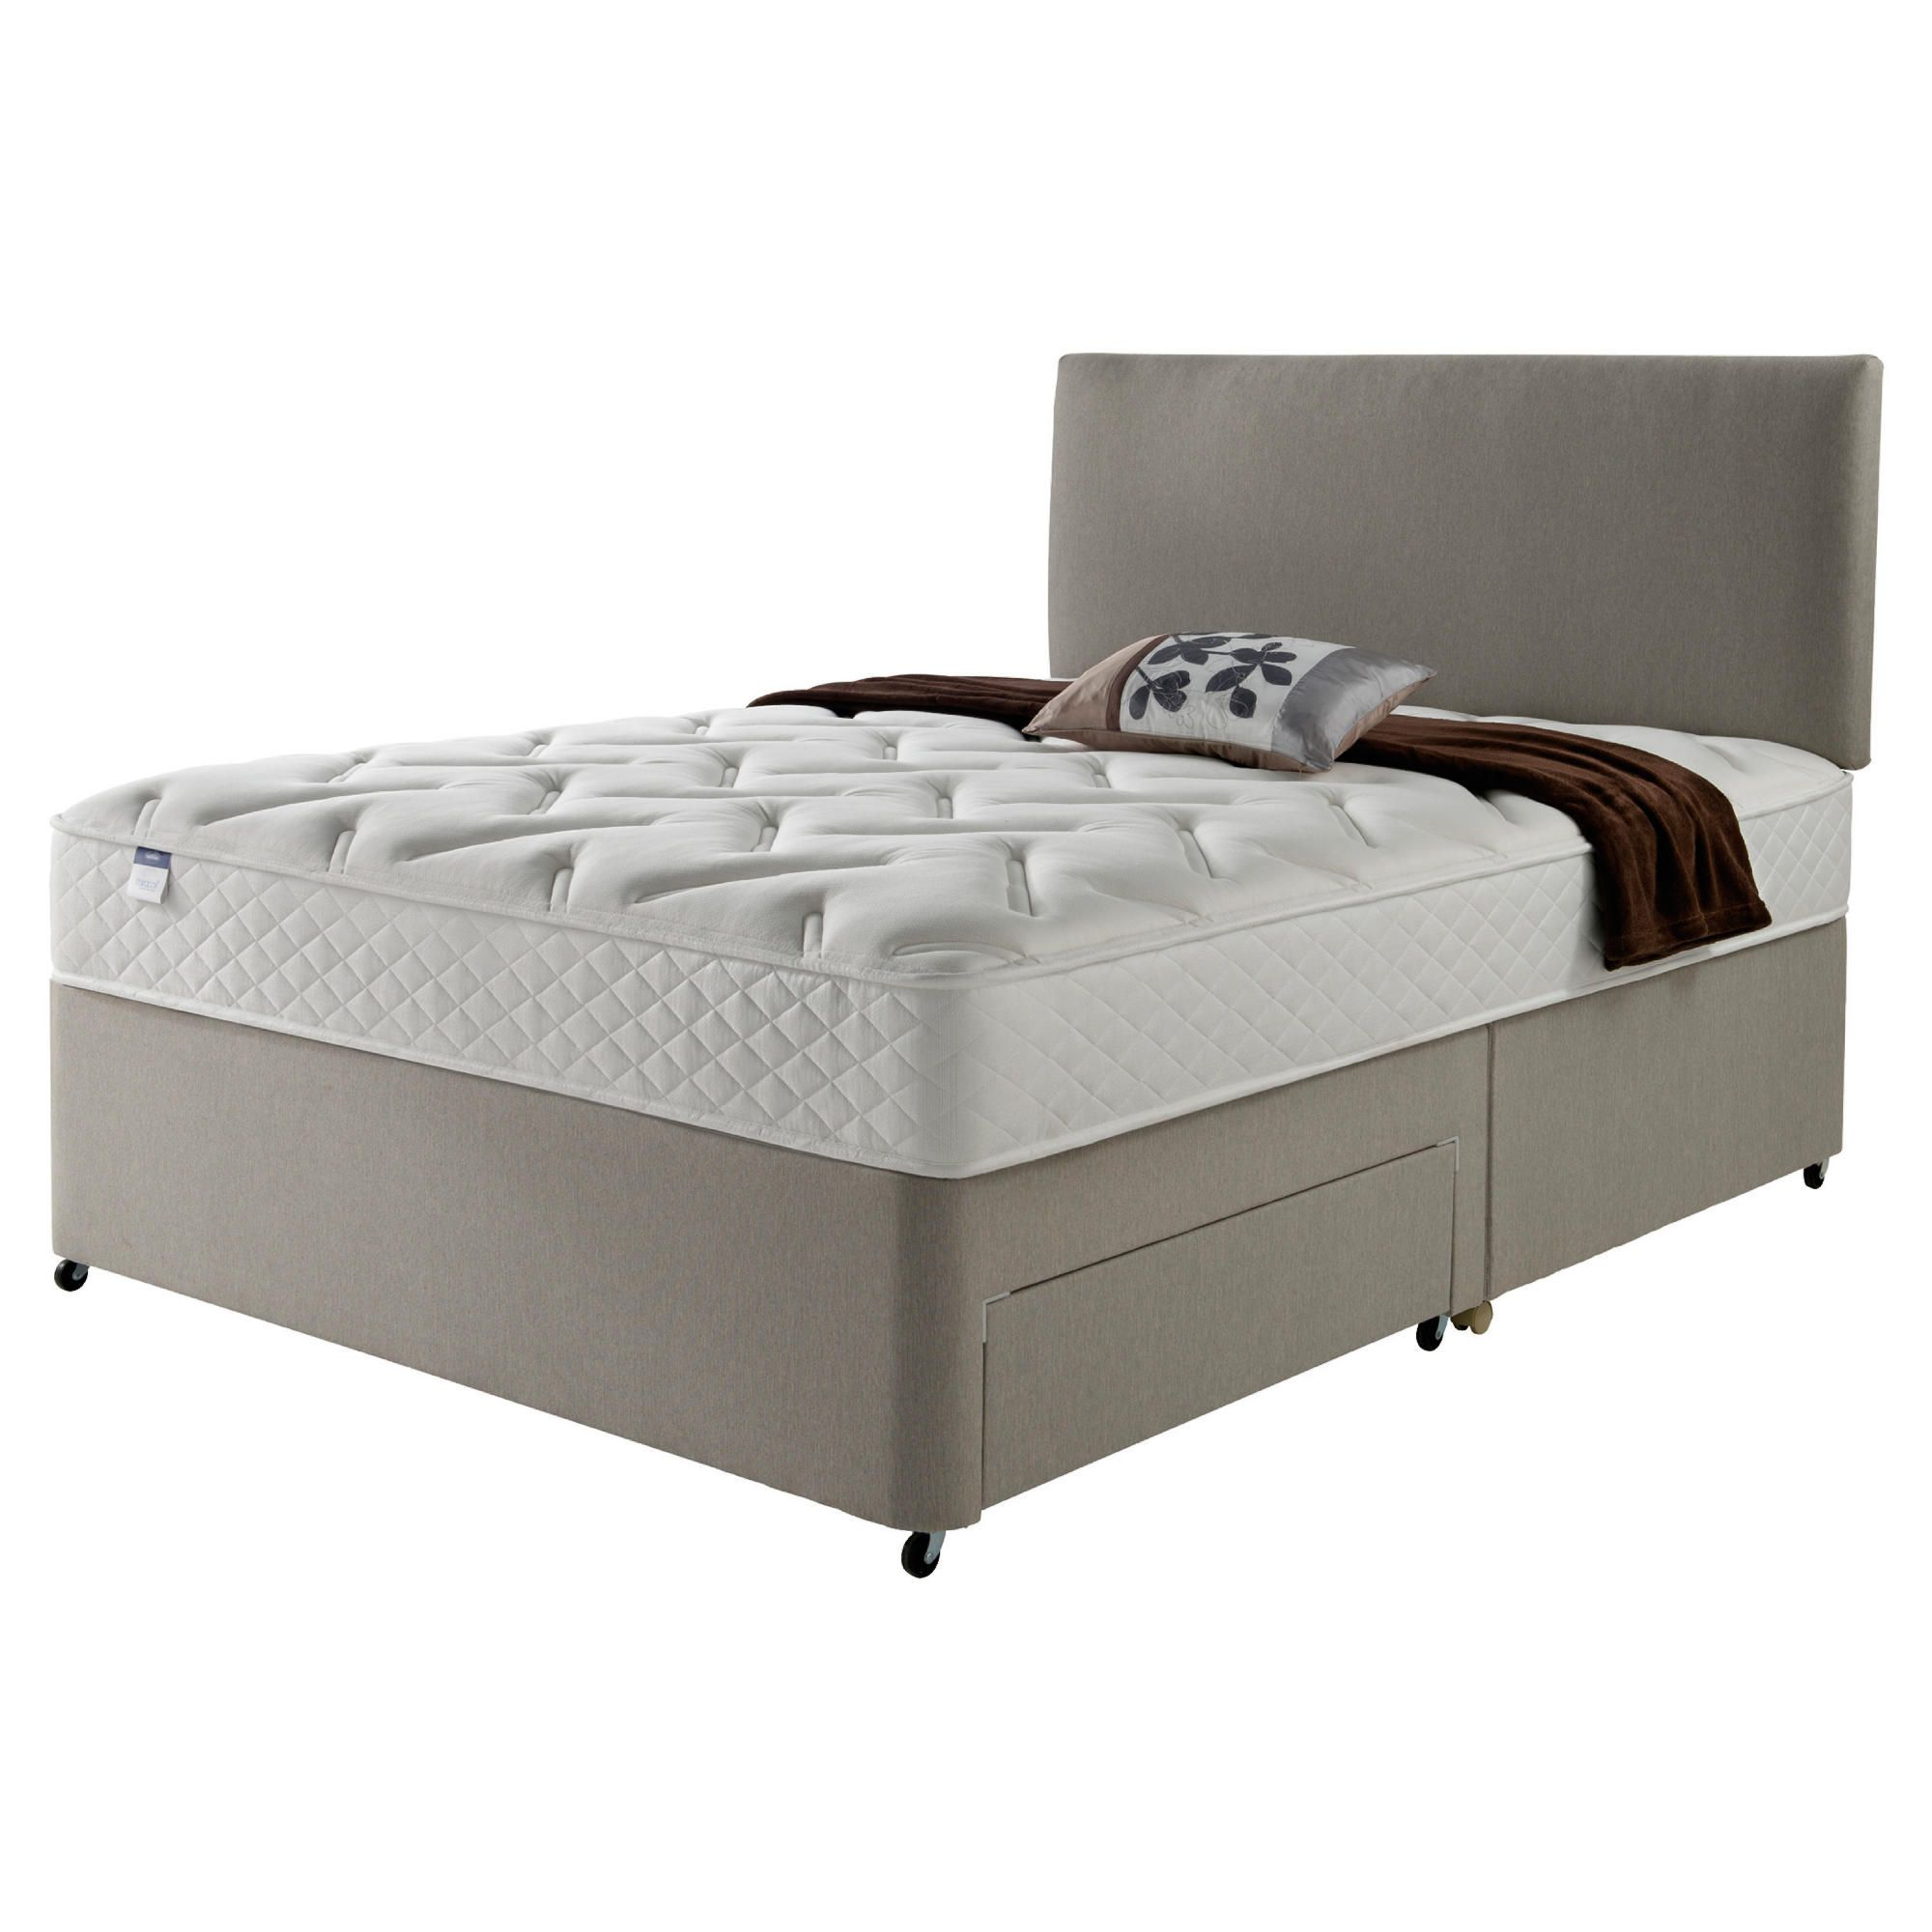 Silentnight Miracoil Luxury Memory Non Storage King Size Divan Mink with Headboard at Tesco Direct